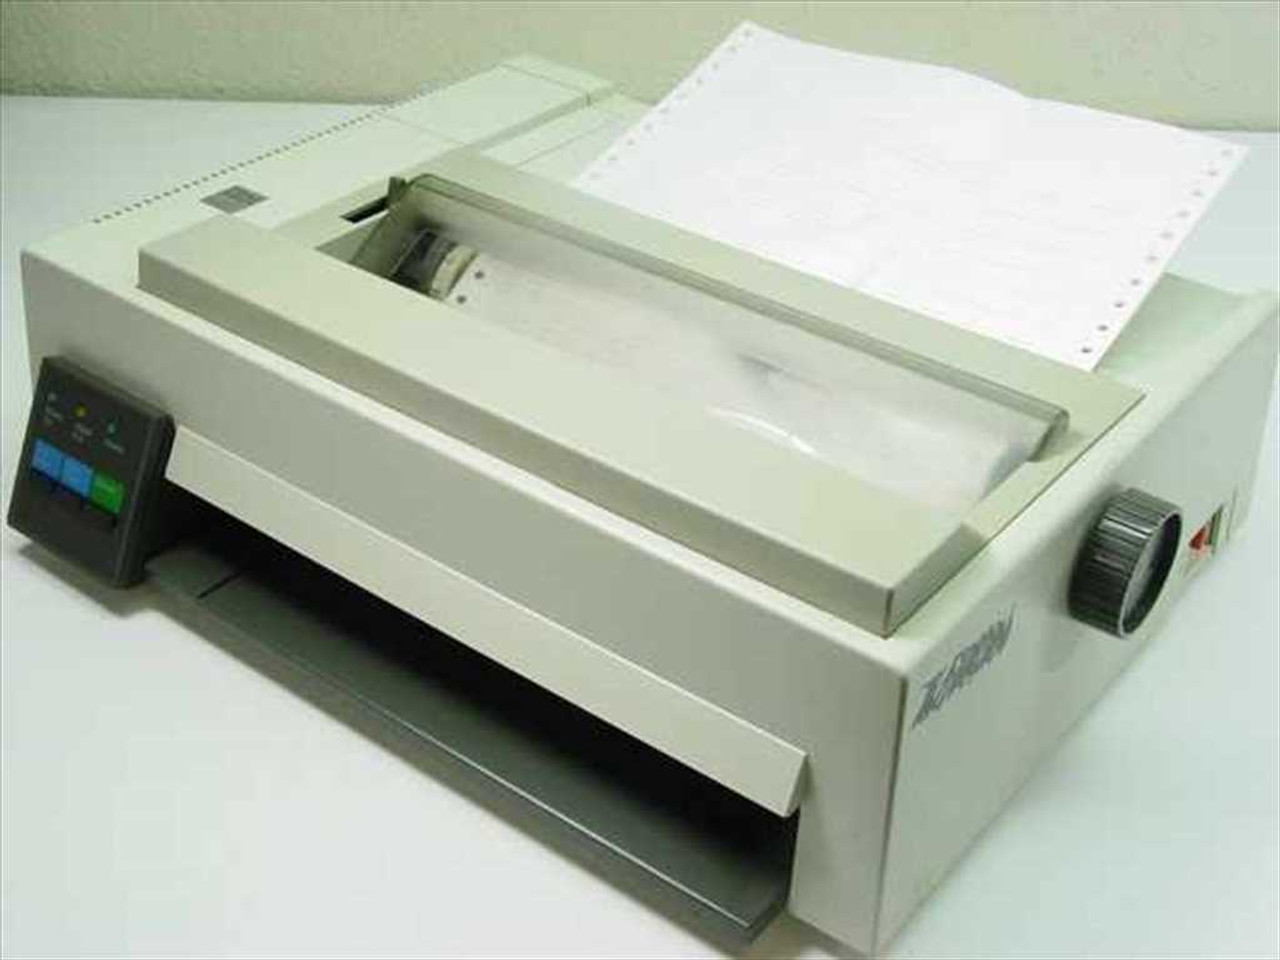 Ibm proprinter iii